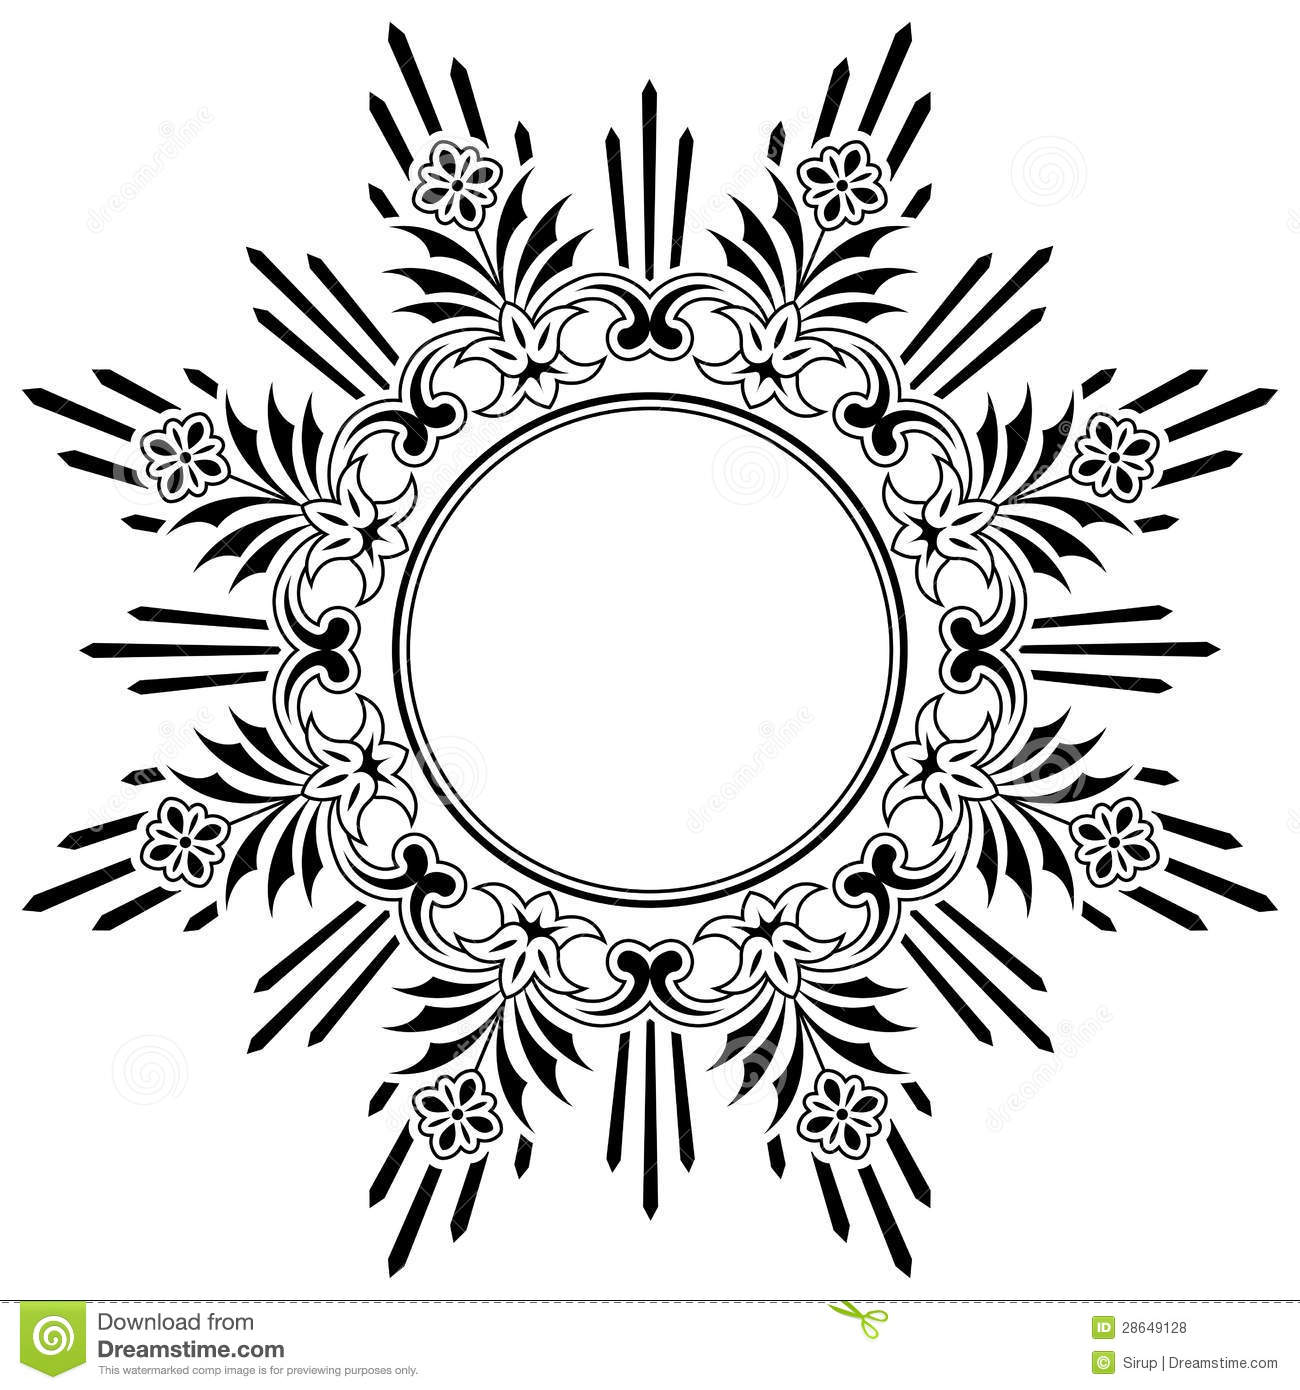 Round Floral Calligraphic Border Stock Vector